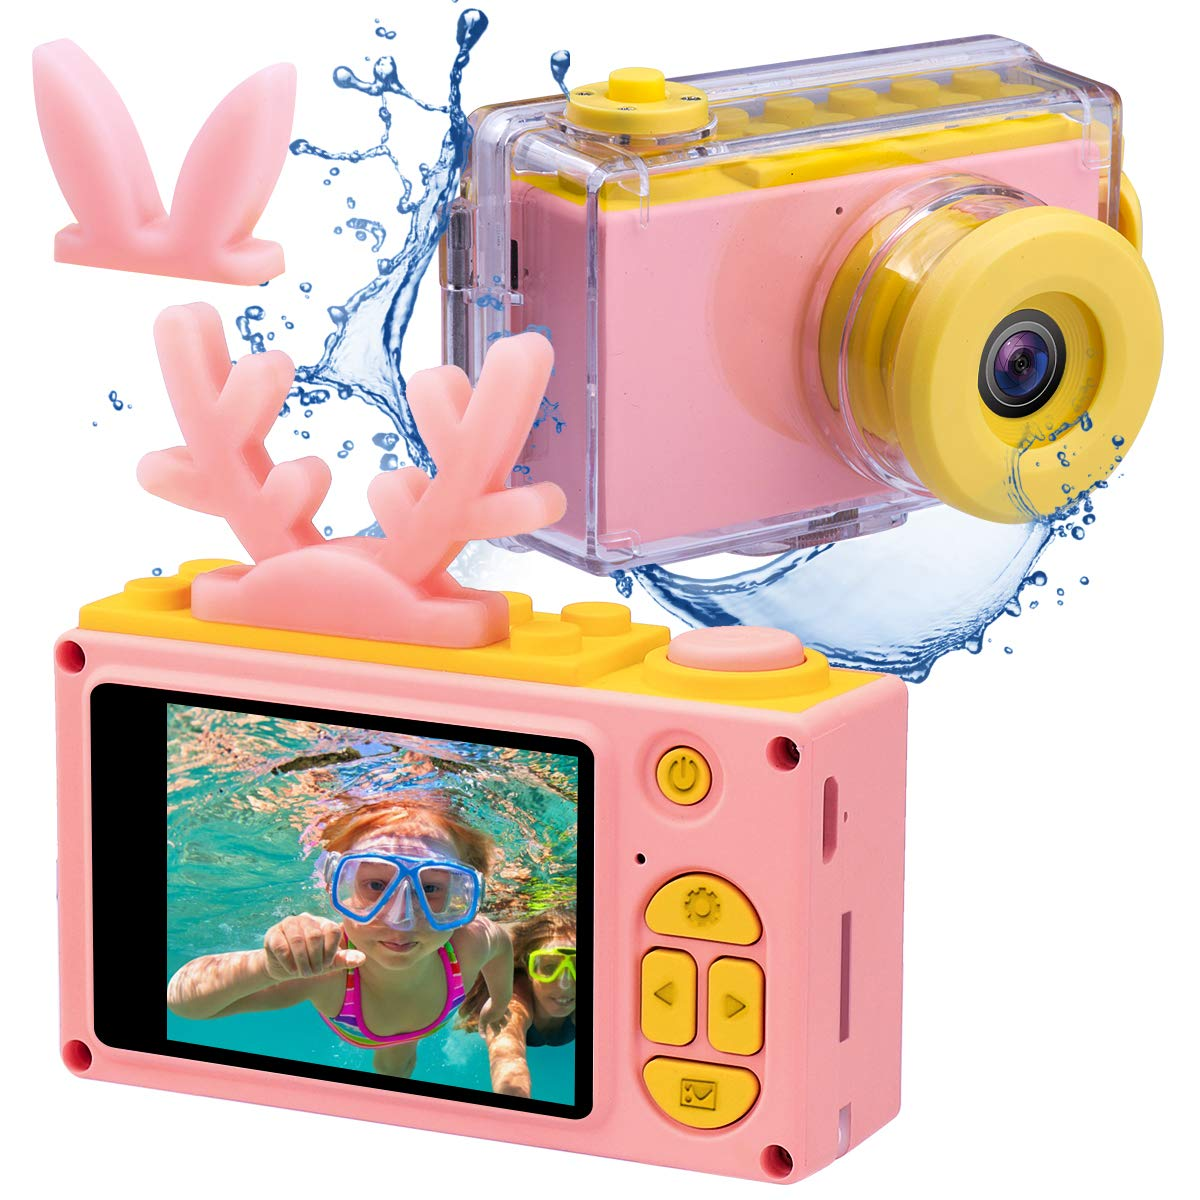 Kids Digital Cameras for Boys HD 1080P Video Camera for Kids Children Selfie Camera Kids Toy Cameras Mini Child Camcorder for Age 3-10 Boys/Girls Pink by Joytrip (Image #1)